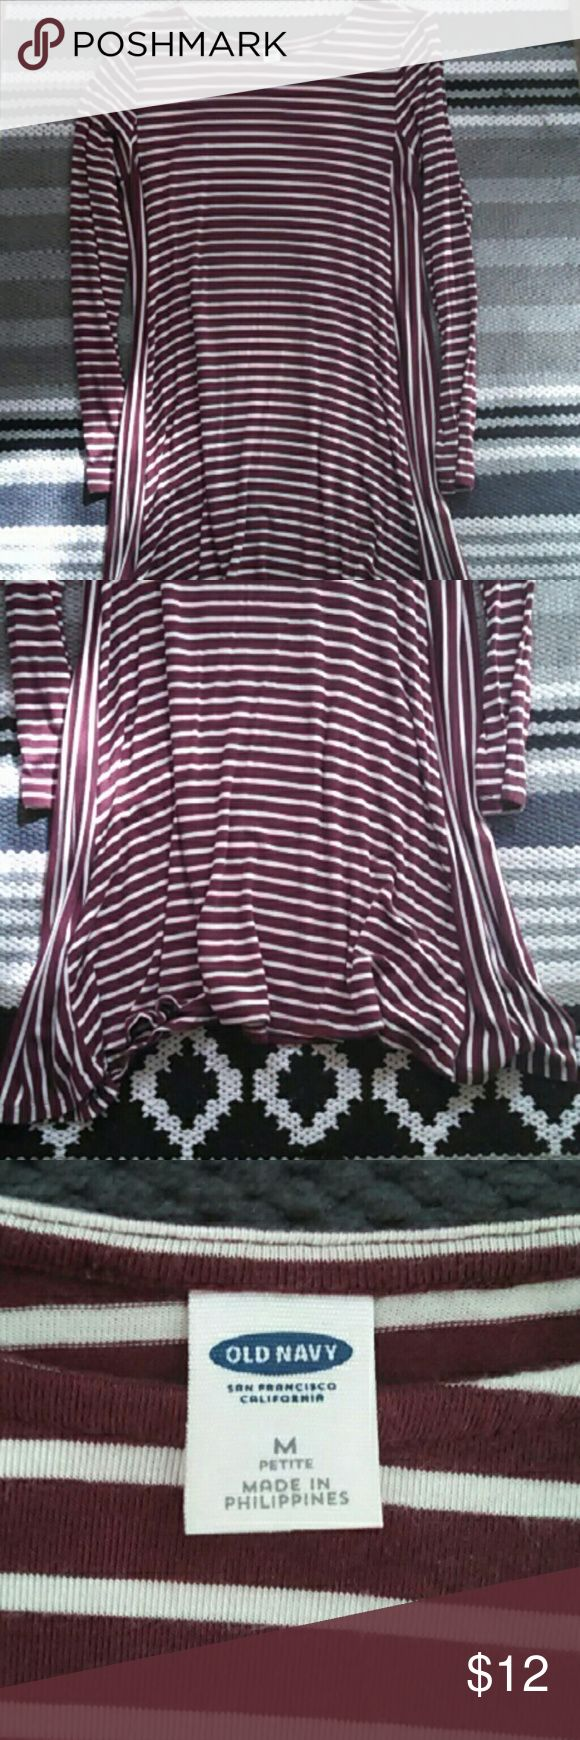 Old Navy Size Medium Petite Swing Dress Burgundy with cream stripes swing dress. Light wash wear. Only hung to dry. Medium petite, but could definitely fit regular medium to smaller large due to stretch. Old Navy Dresses Long Sleeve